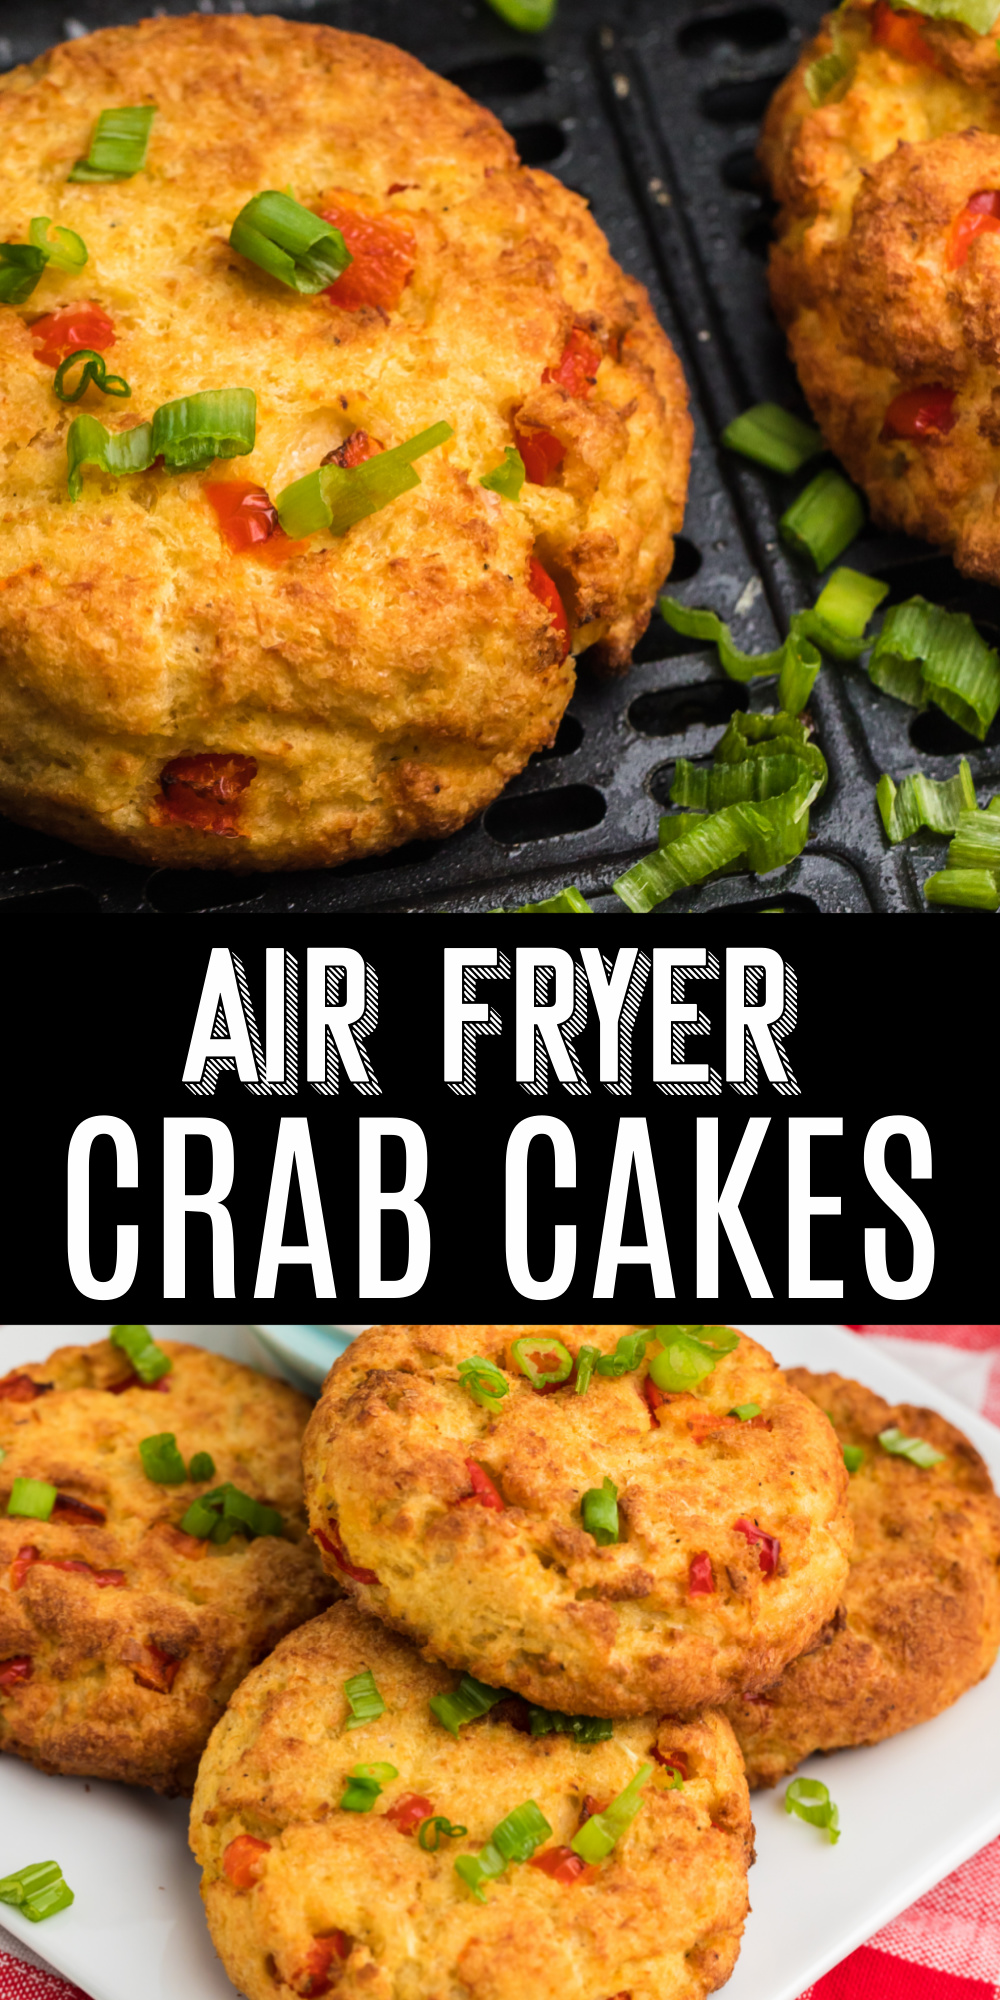 Looking for a simple appetizer any day of the week? These Air Fryer Crab Cakes are the best way to start off any meal! Made with jumbo lump crab meat, mayo, breadcrumbs, bell pepper, and more.